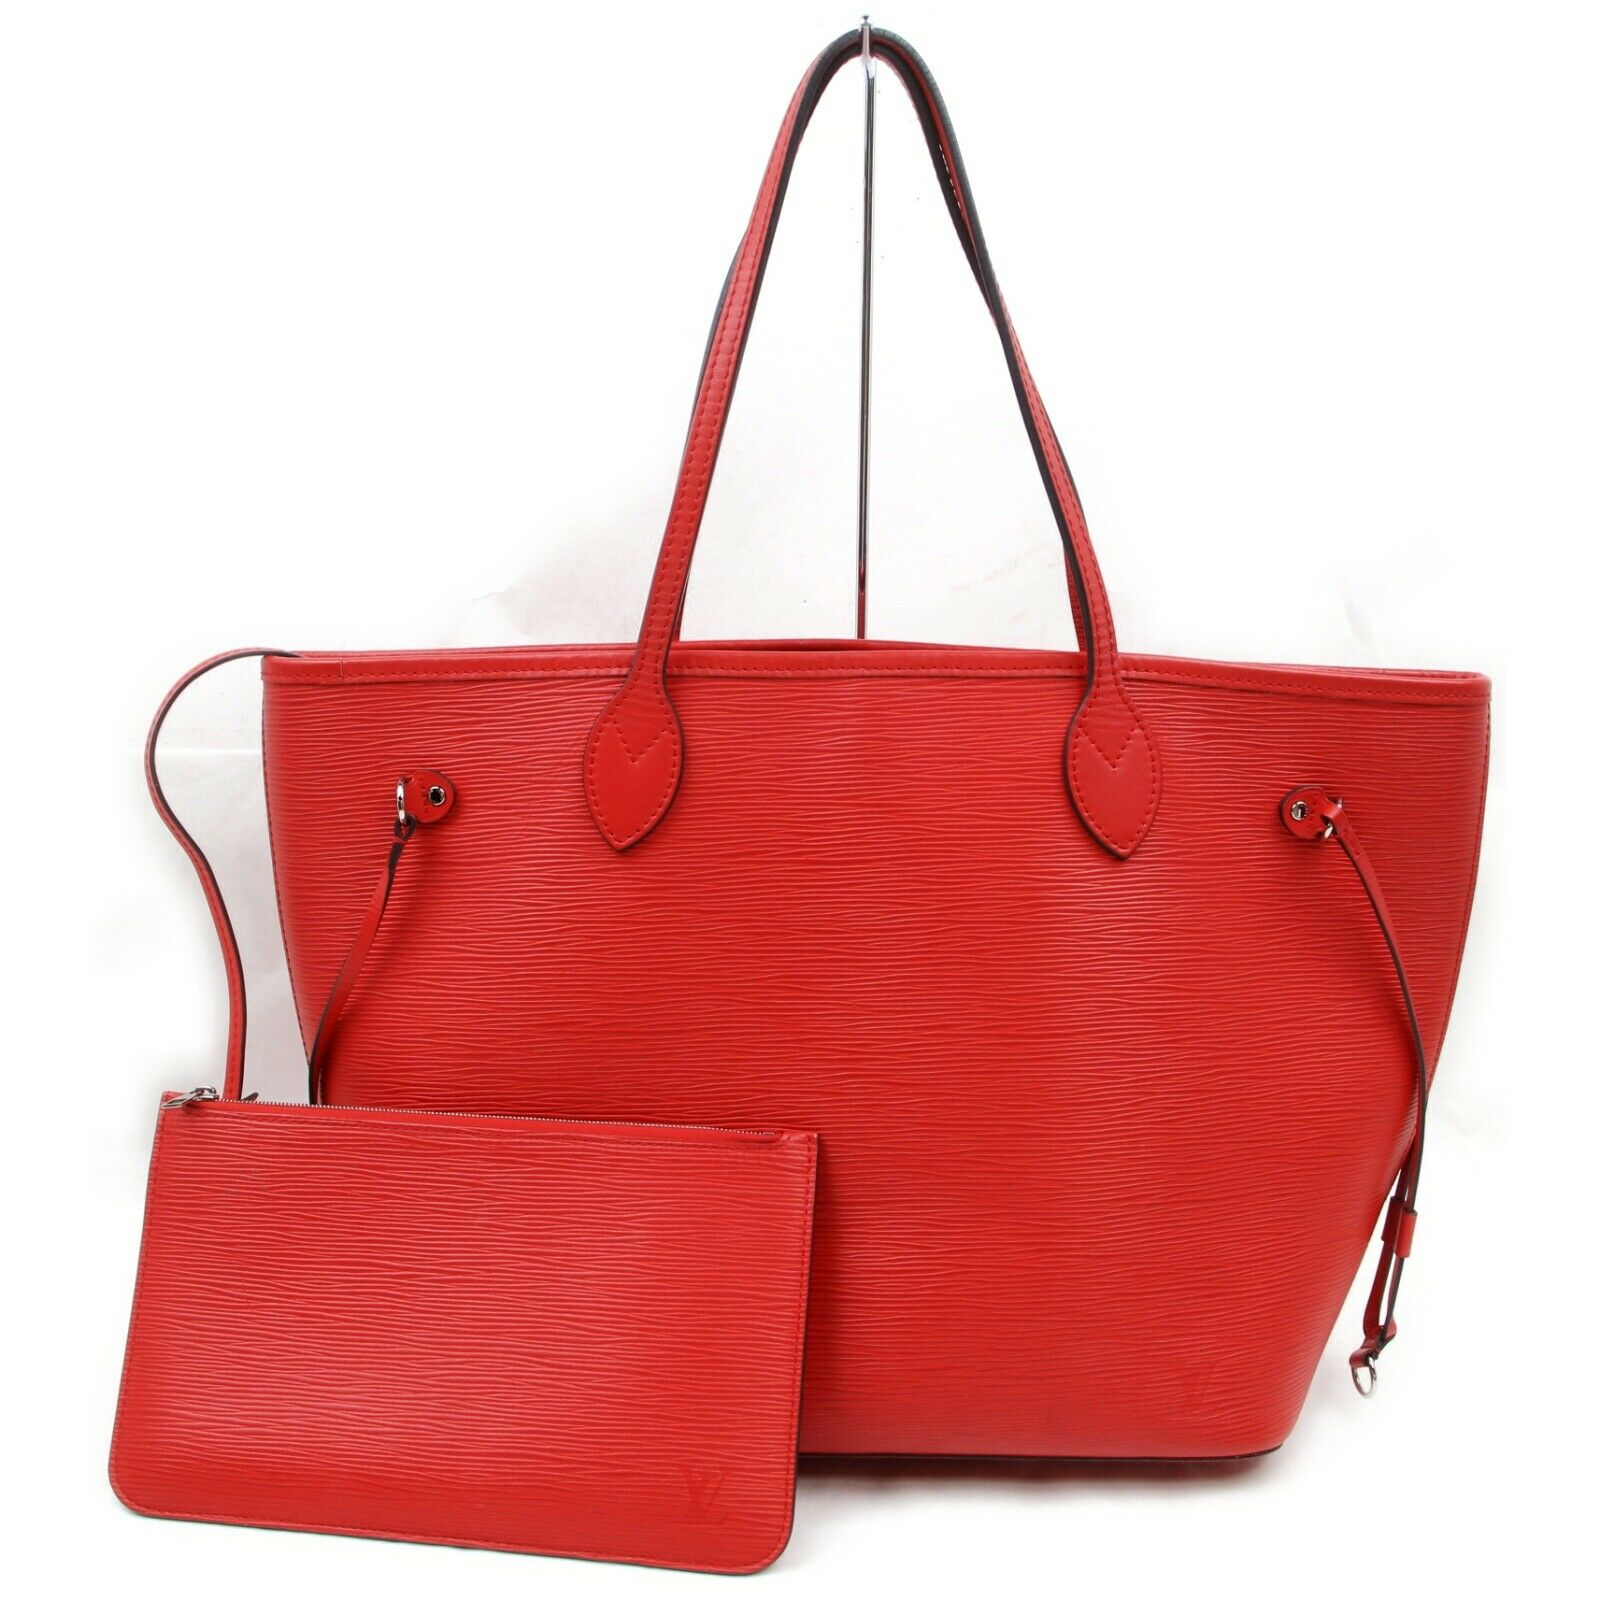 Louis Vuitton Neverfull MM M41318 Red Epi Tote Bag